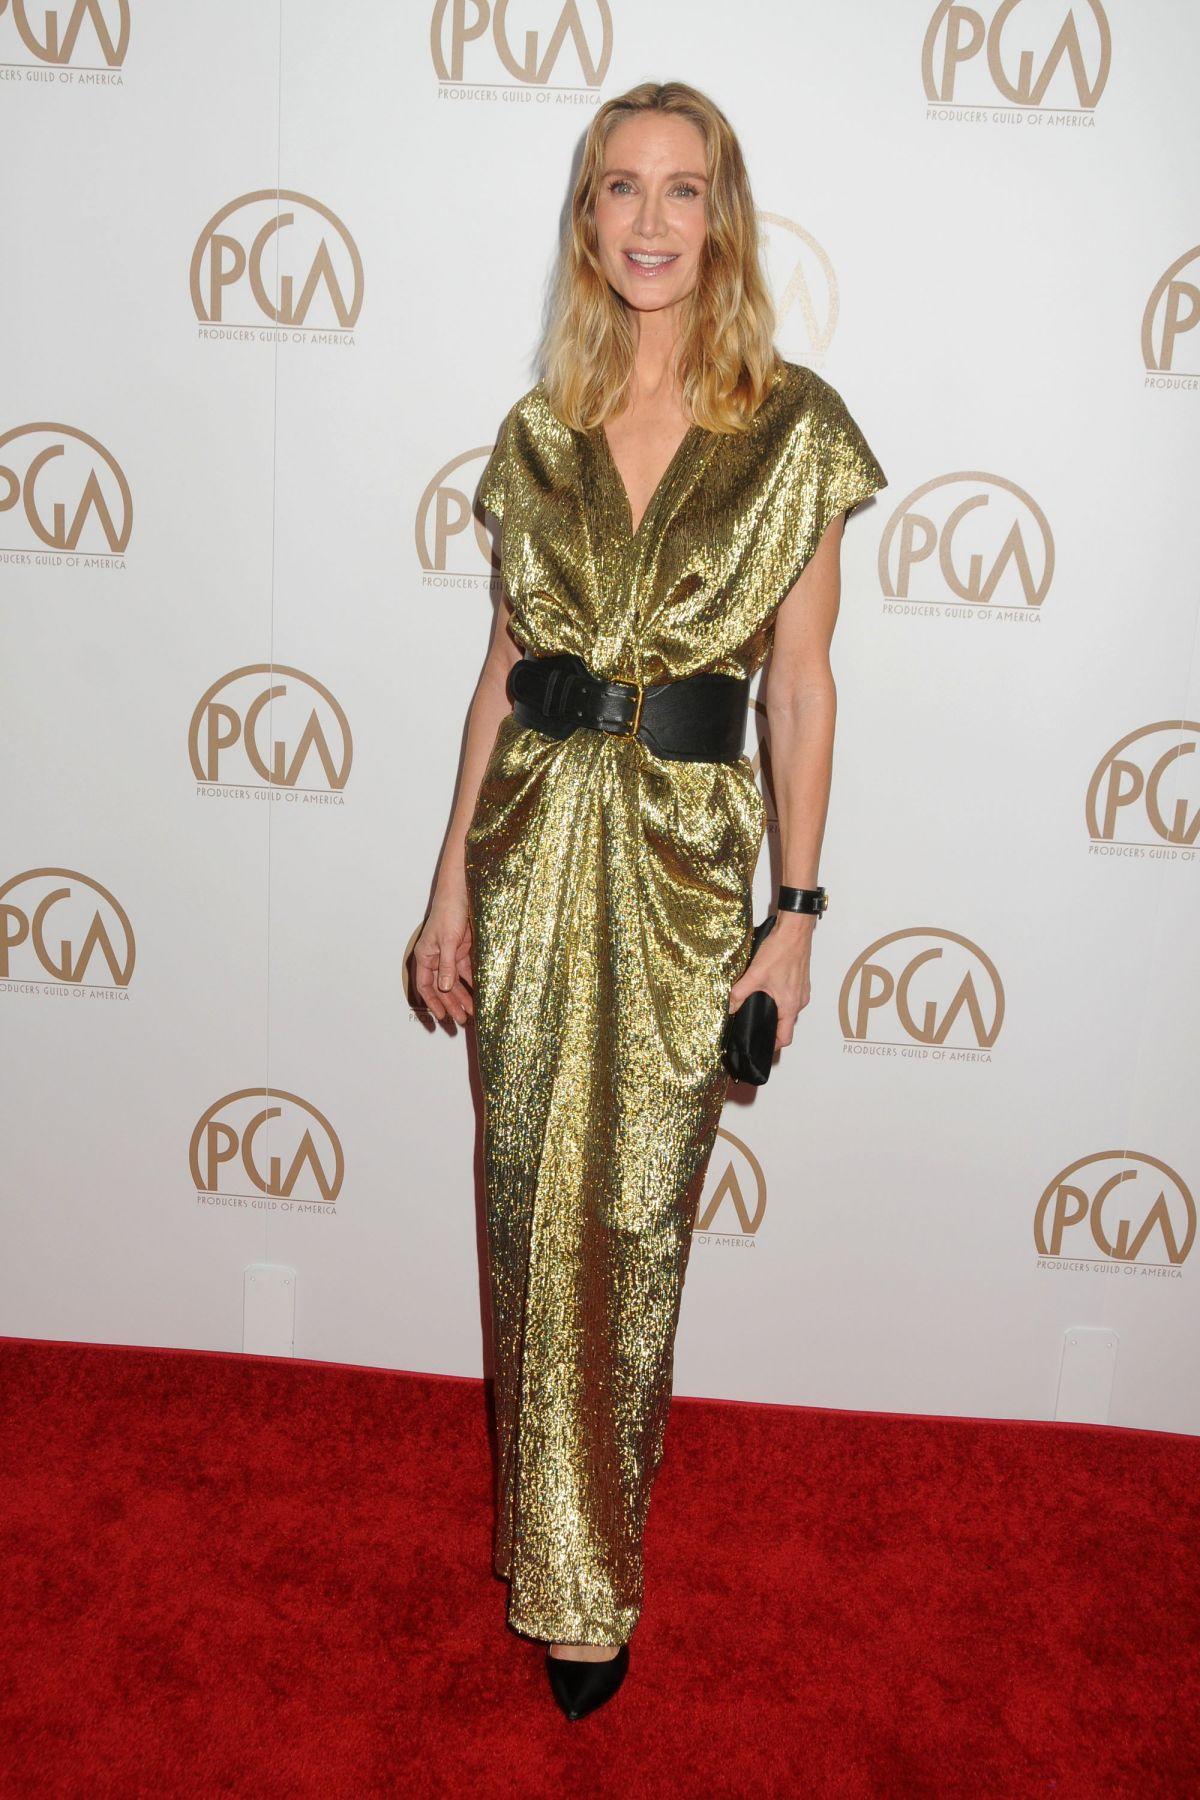 KELLY LYNCH at 27th Annual Producers Guild Awards in Los Angeles 01/23/2016